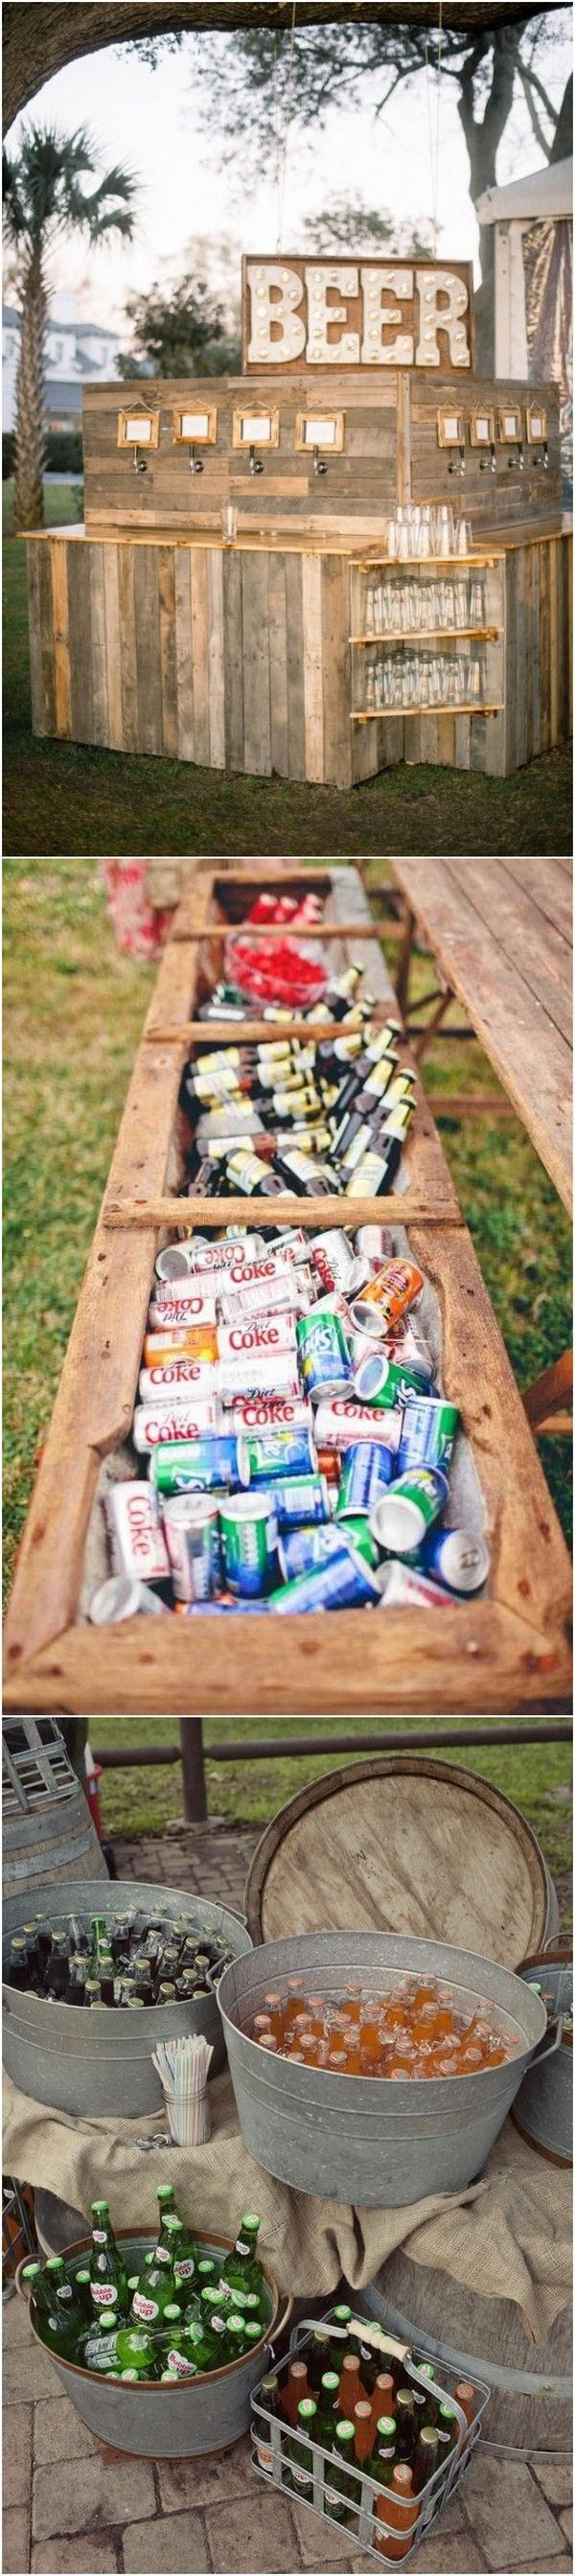 creative drink bar for country rustic wedding ideas